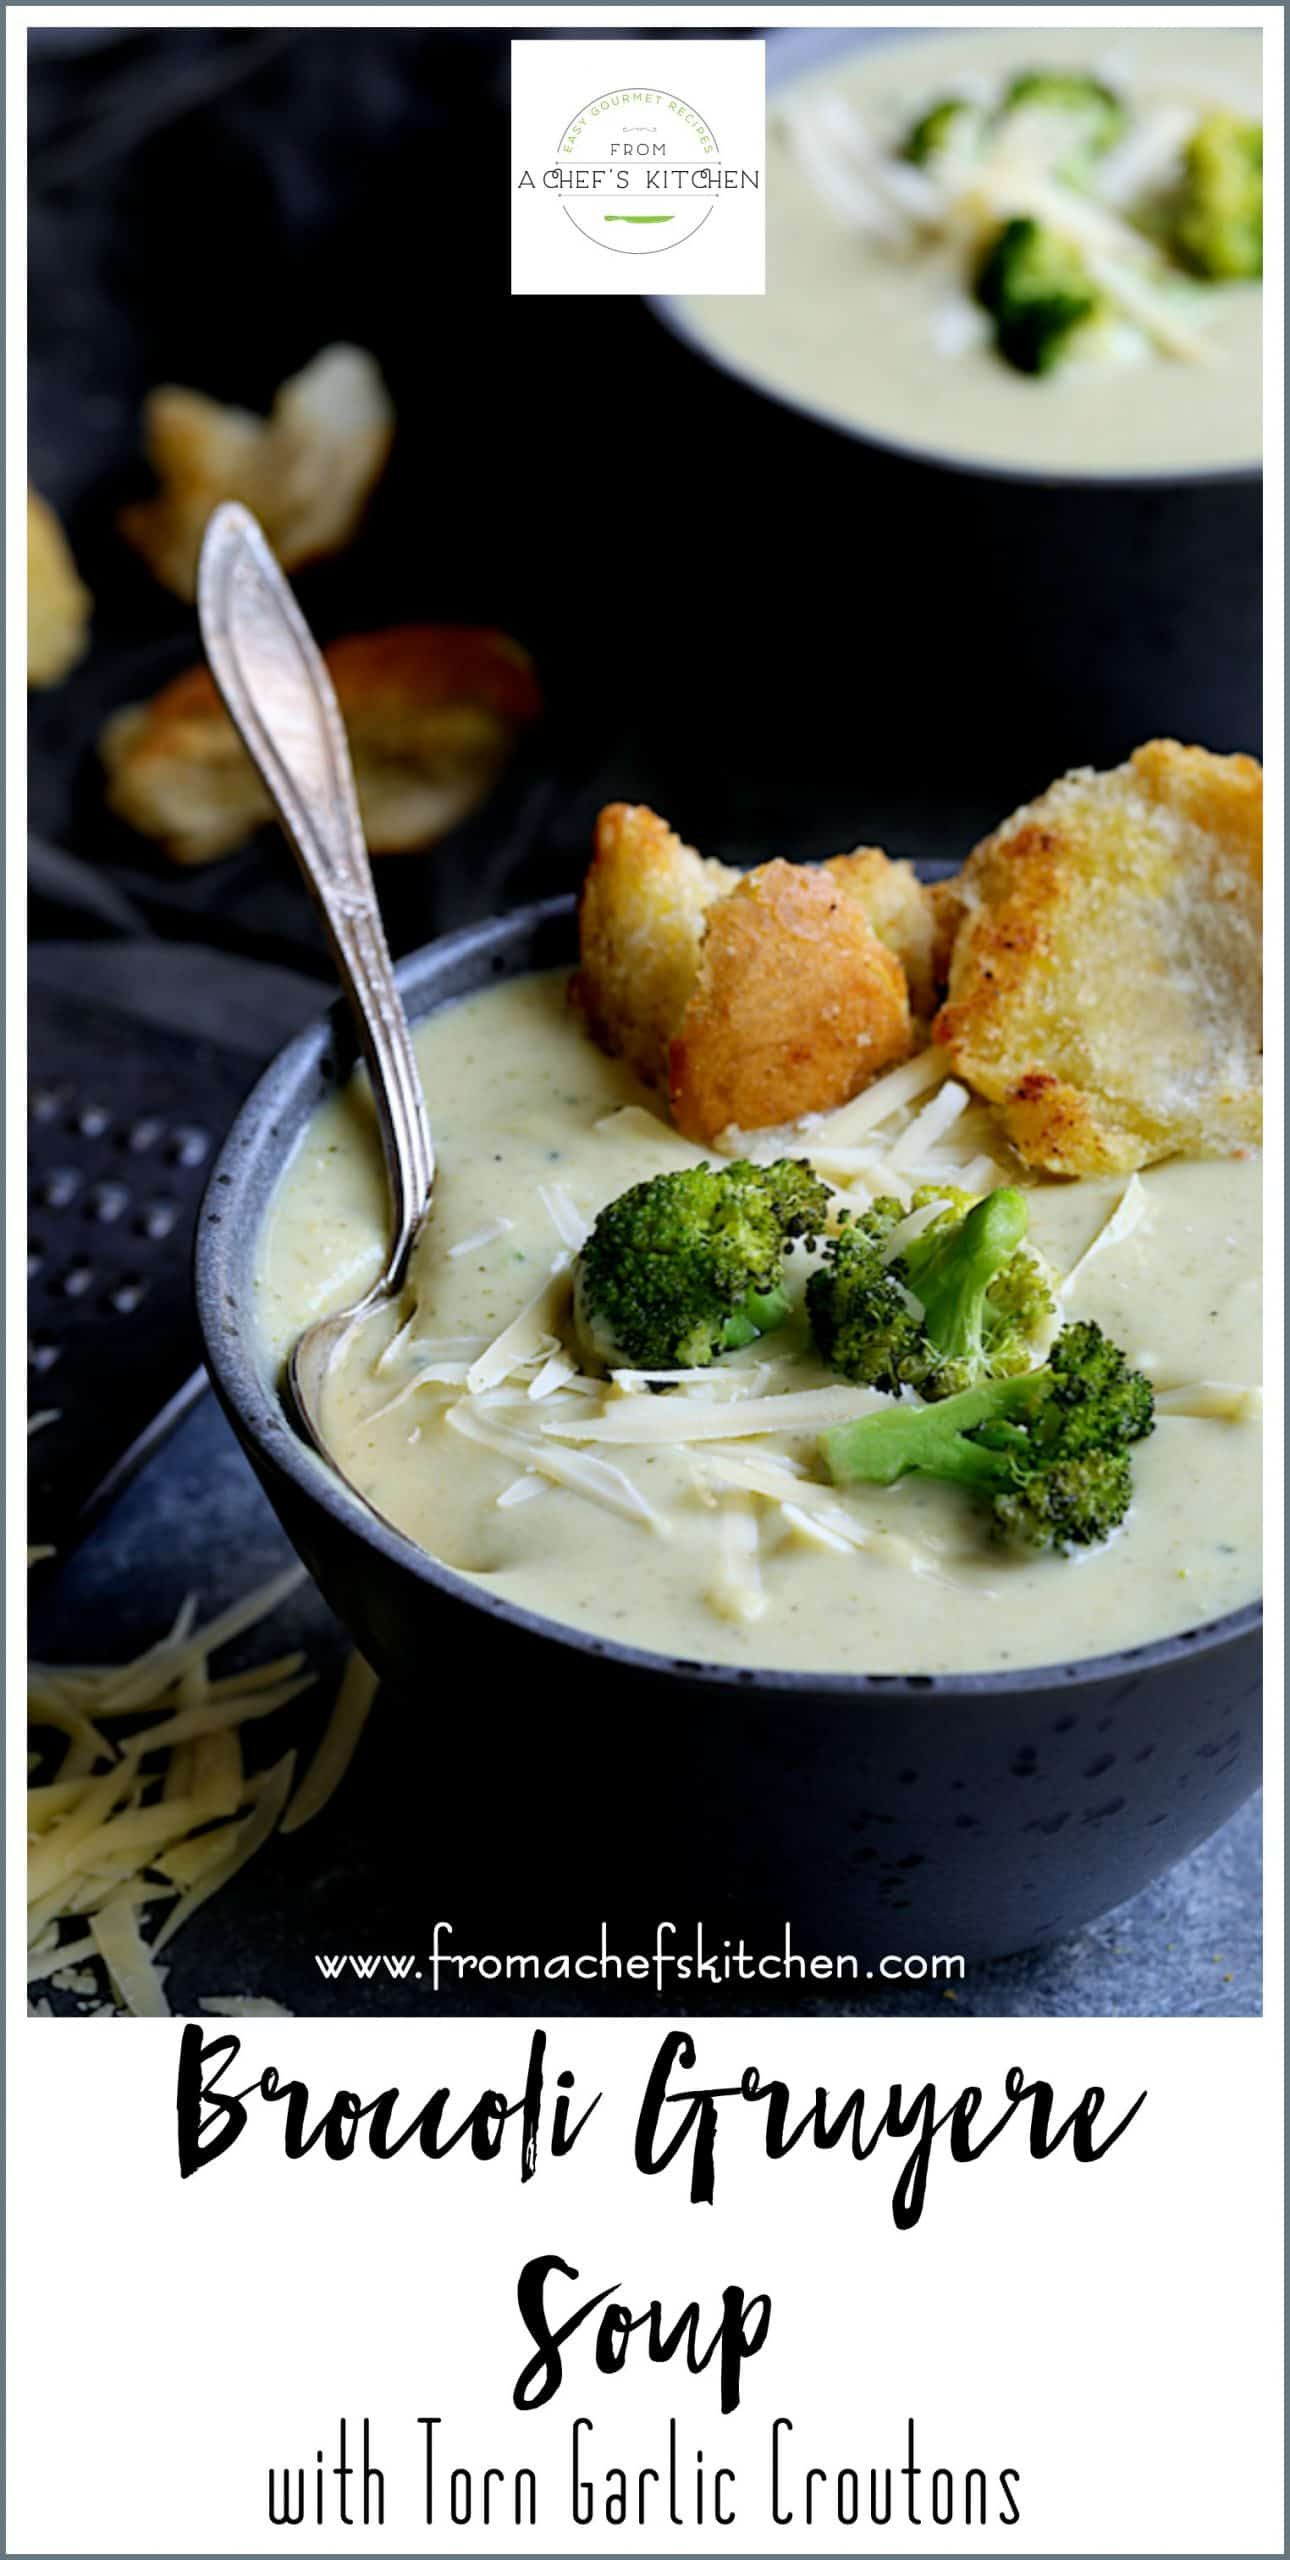 Broccoli Gruyere Soup with Torn Garlic Croutons Broccoli Gruyere Soup is an upscale twist on classic broccoli cheese soup thats elegant enough to serve at your next dinne...